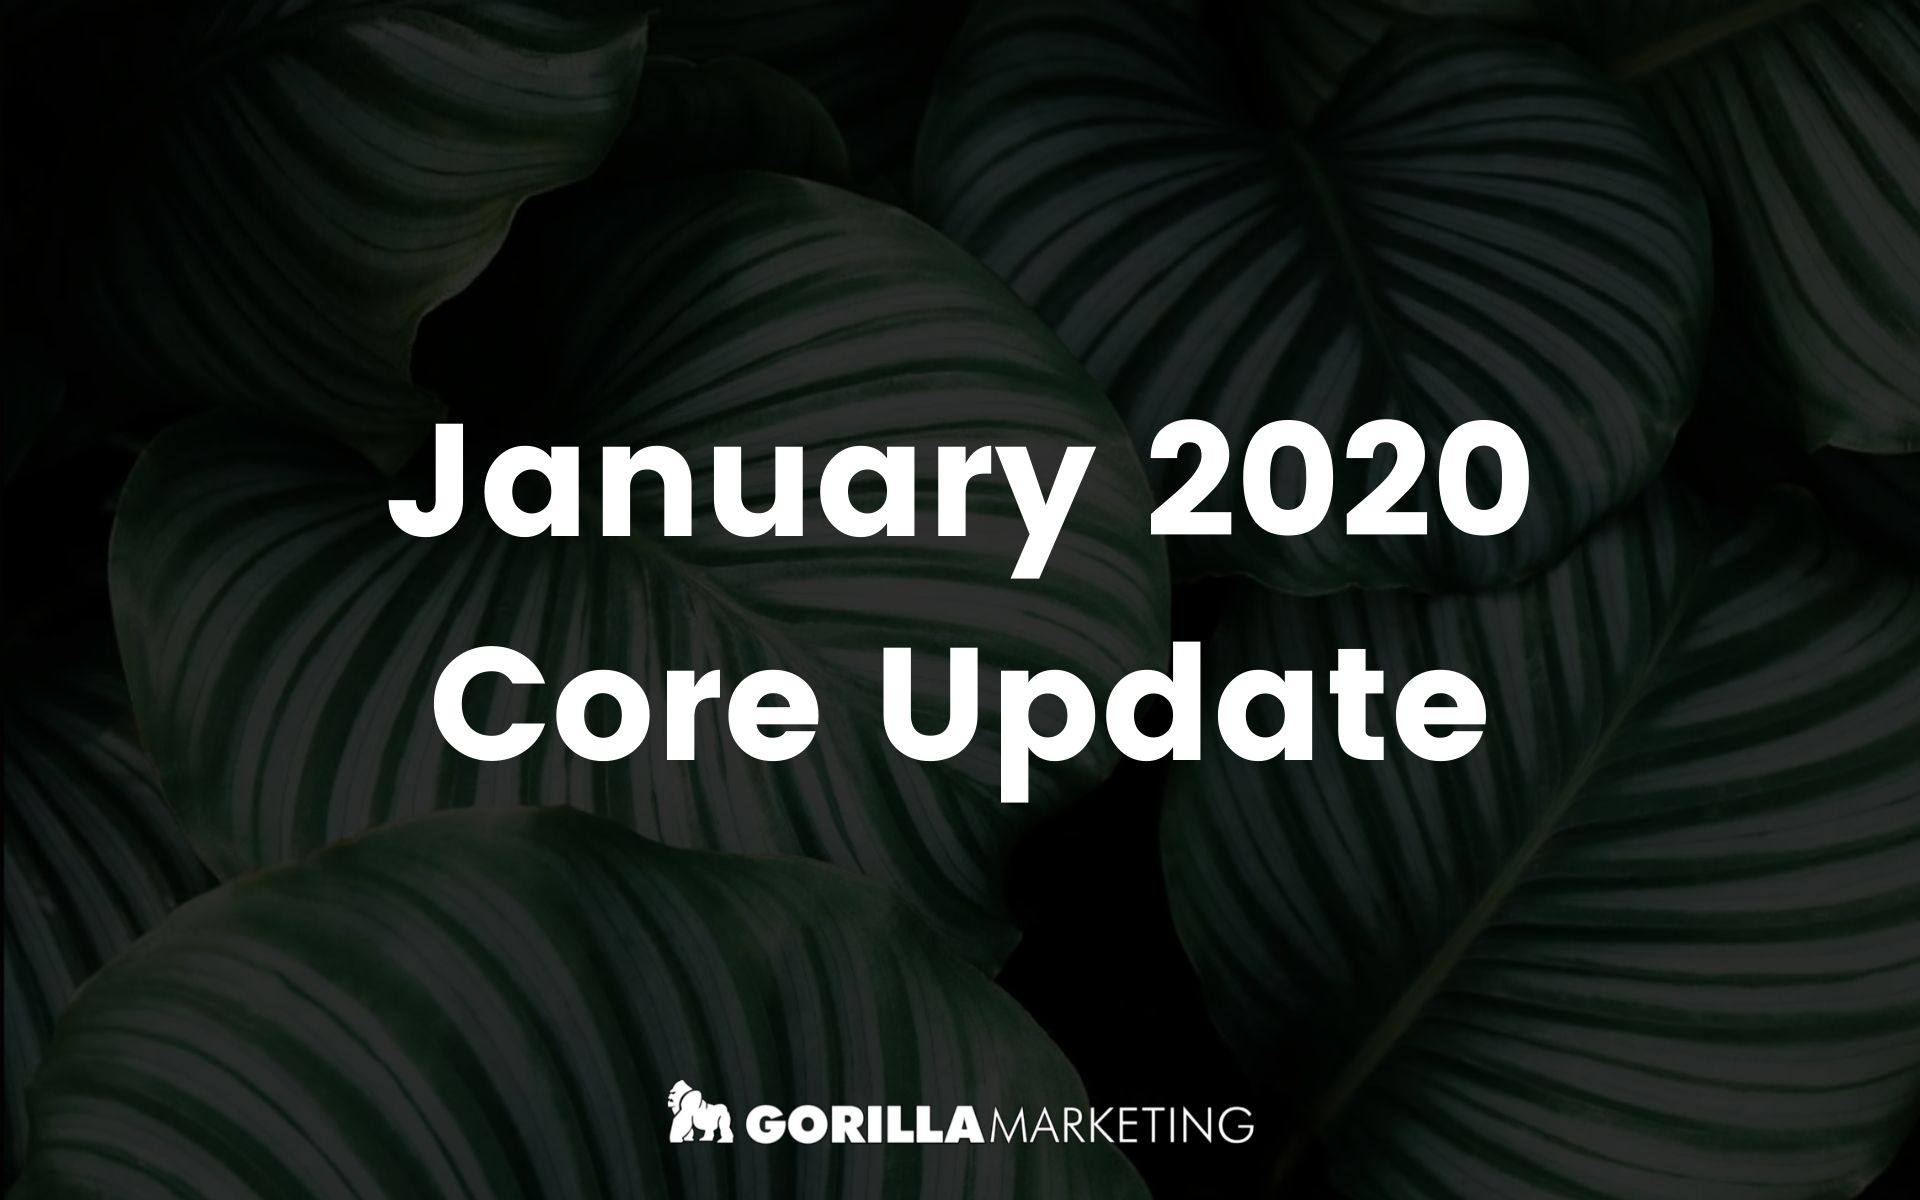 January 2020 Core Update 1